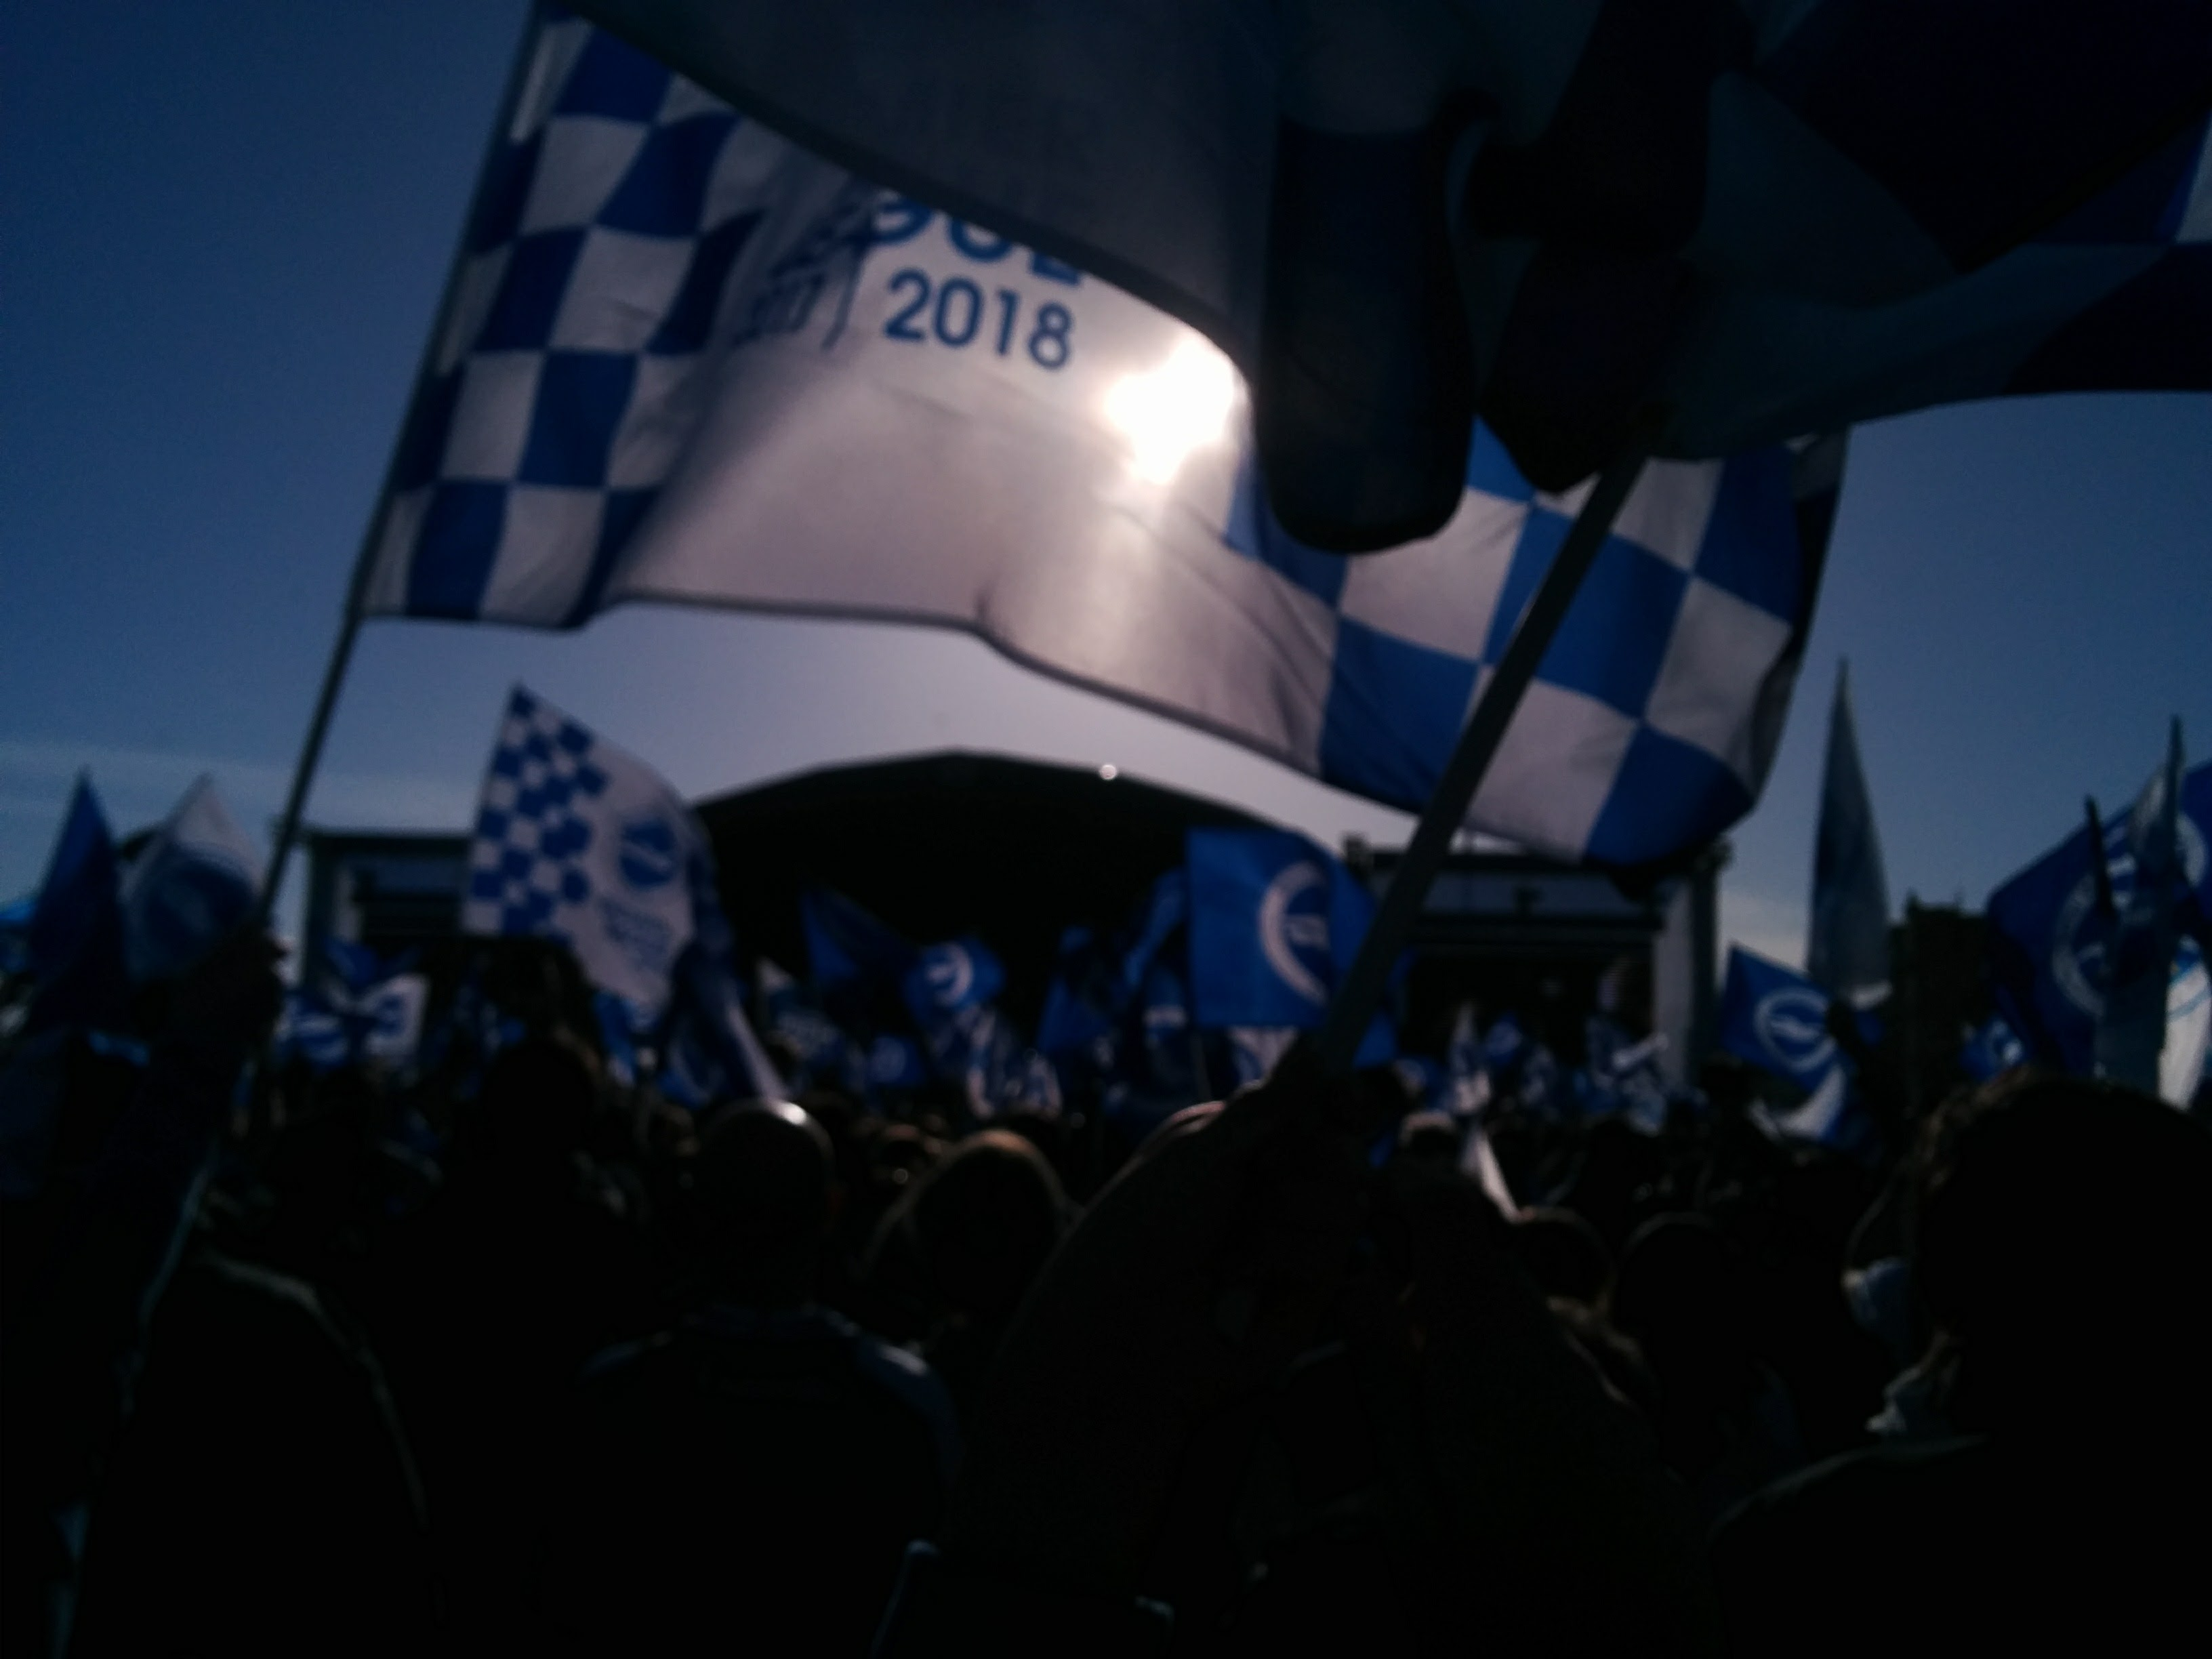 Blue and white flag waving over crowd of people, stage in the distance.